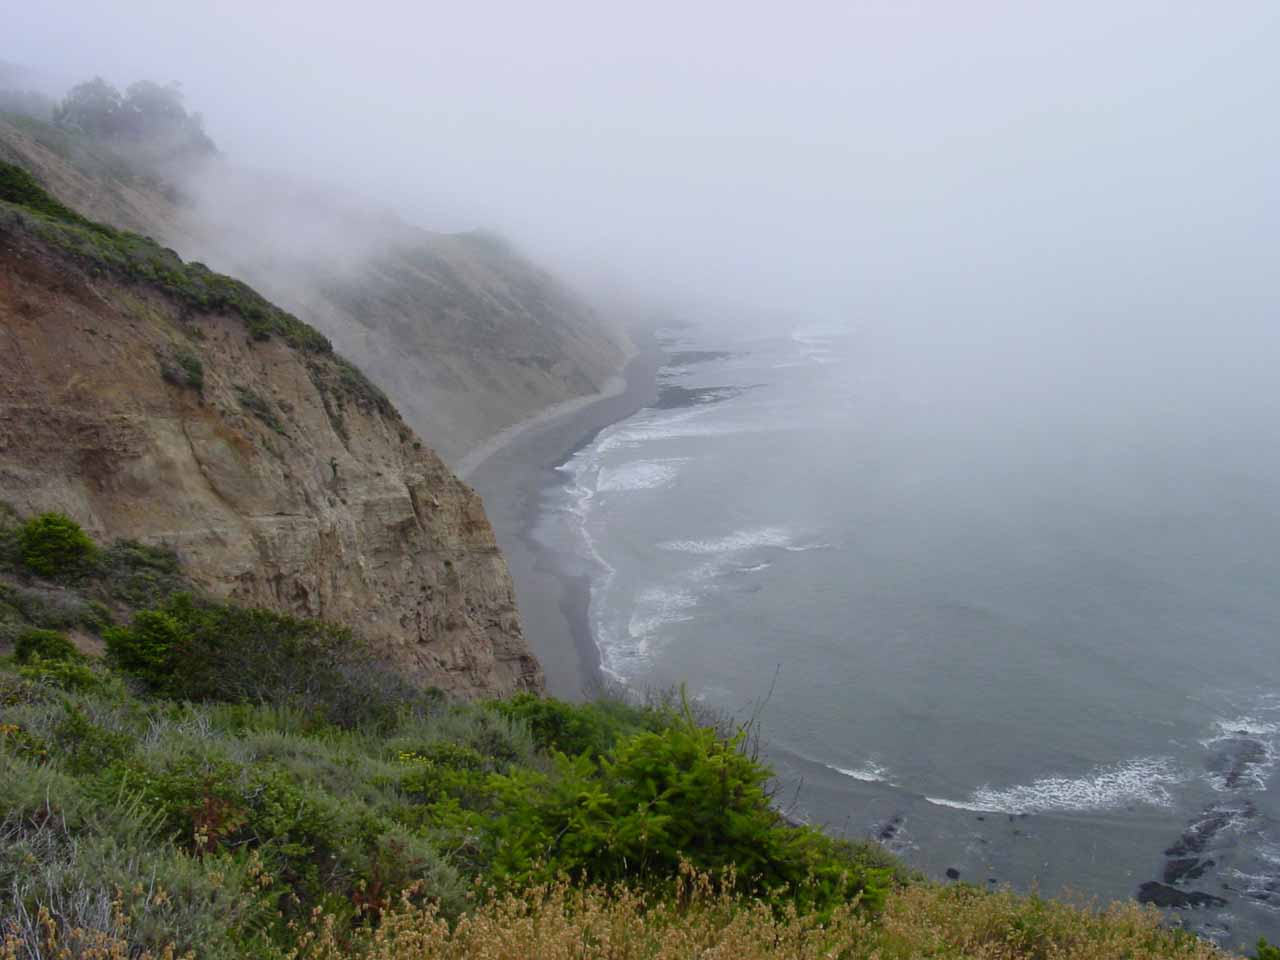 Still foggy along the coast as we got closer to the trailhead